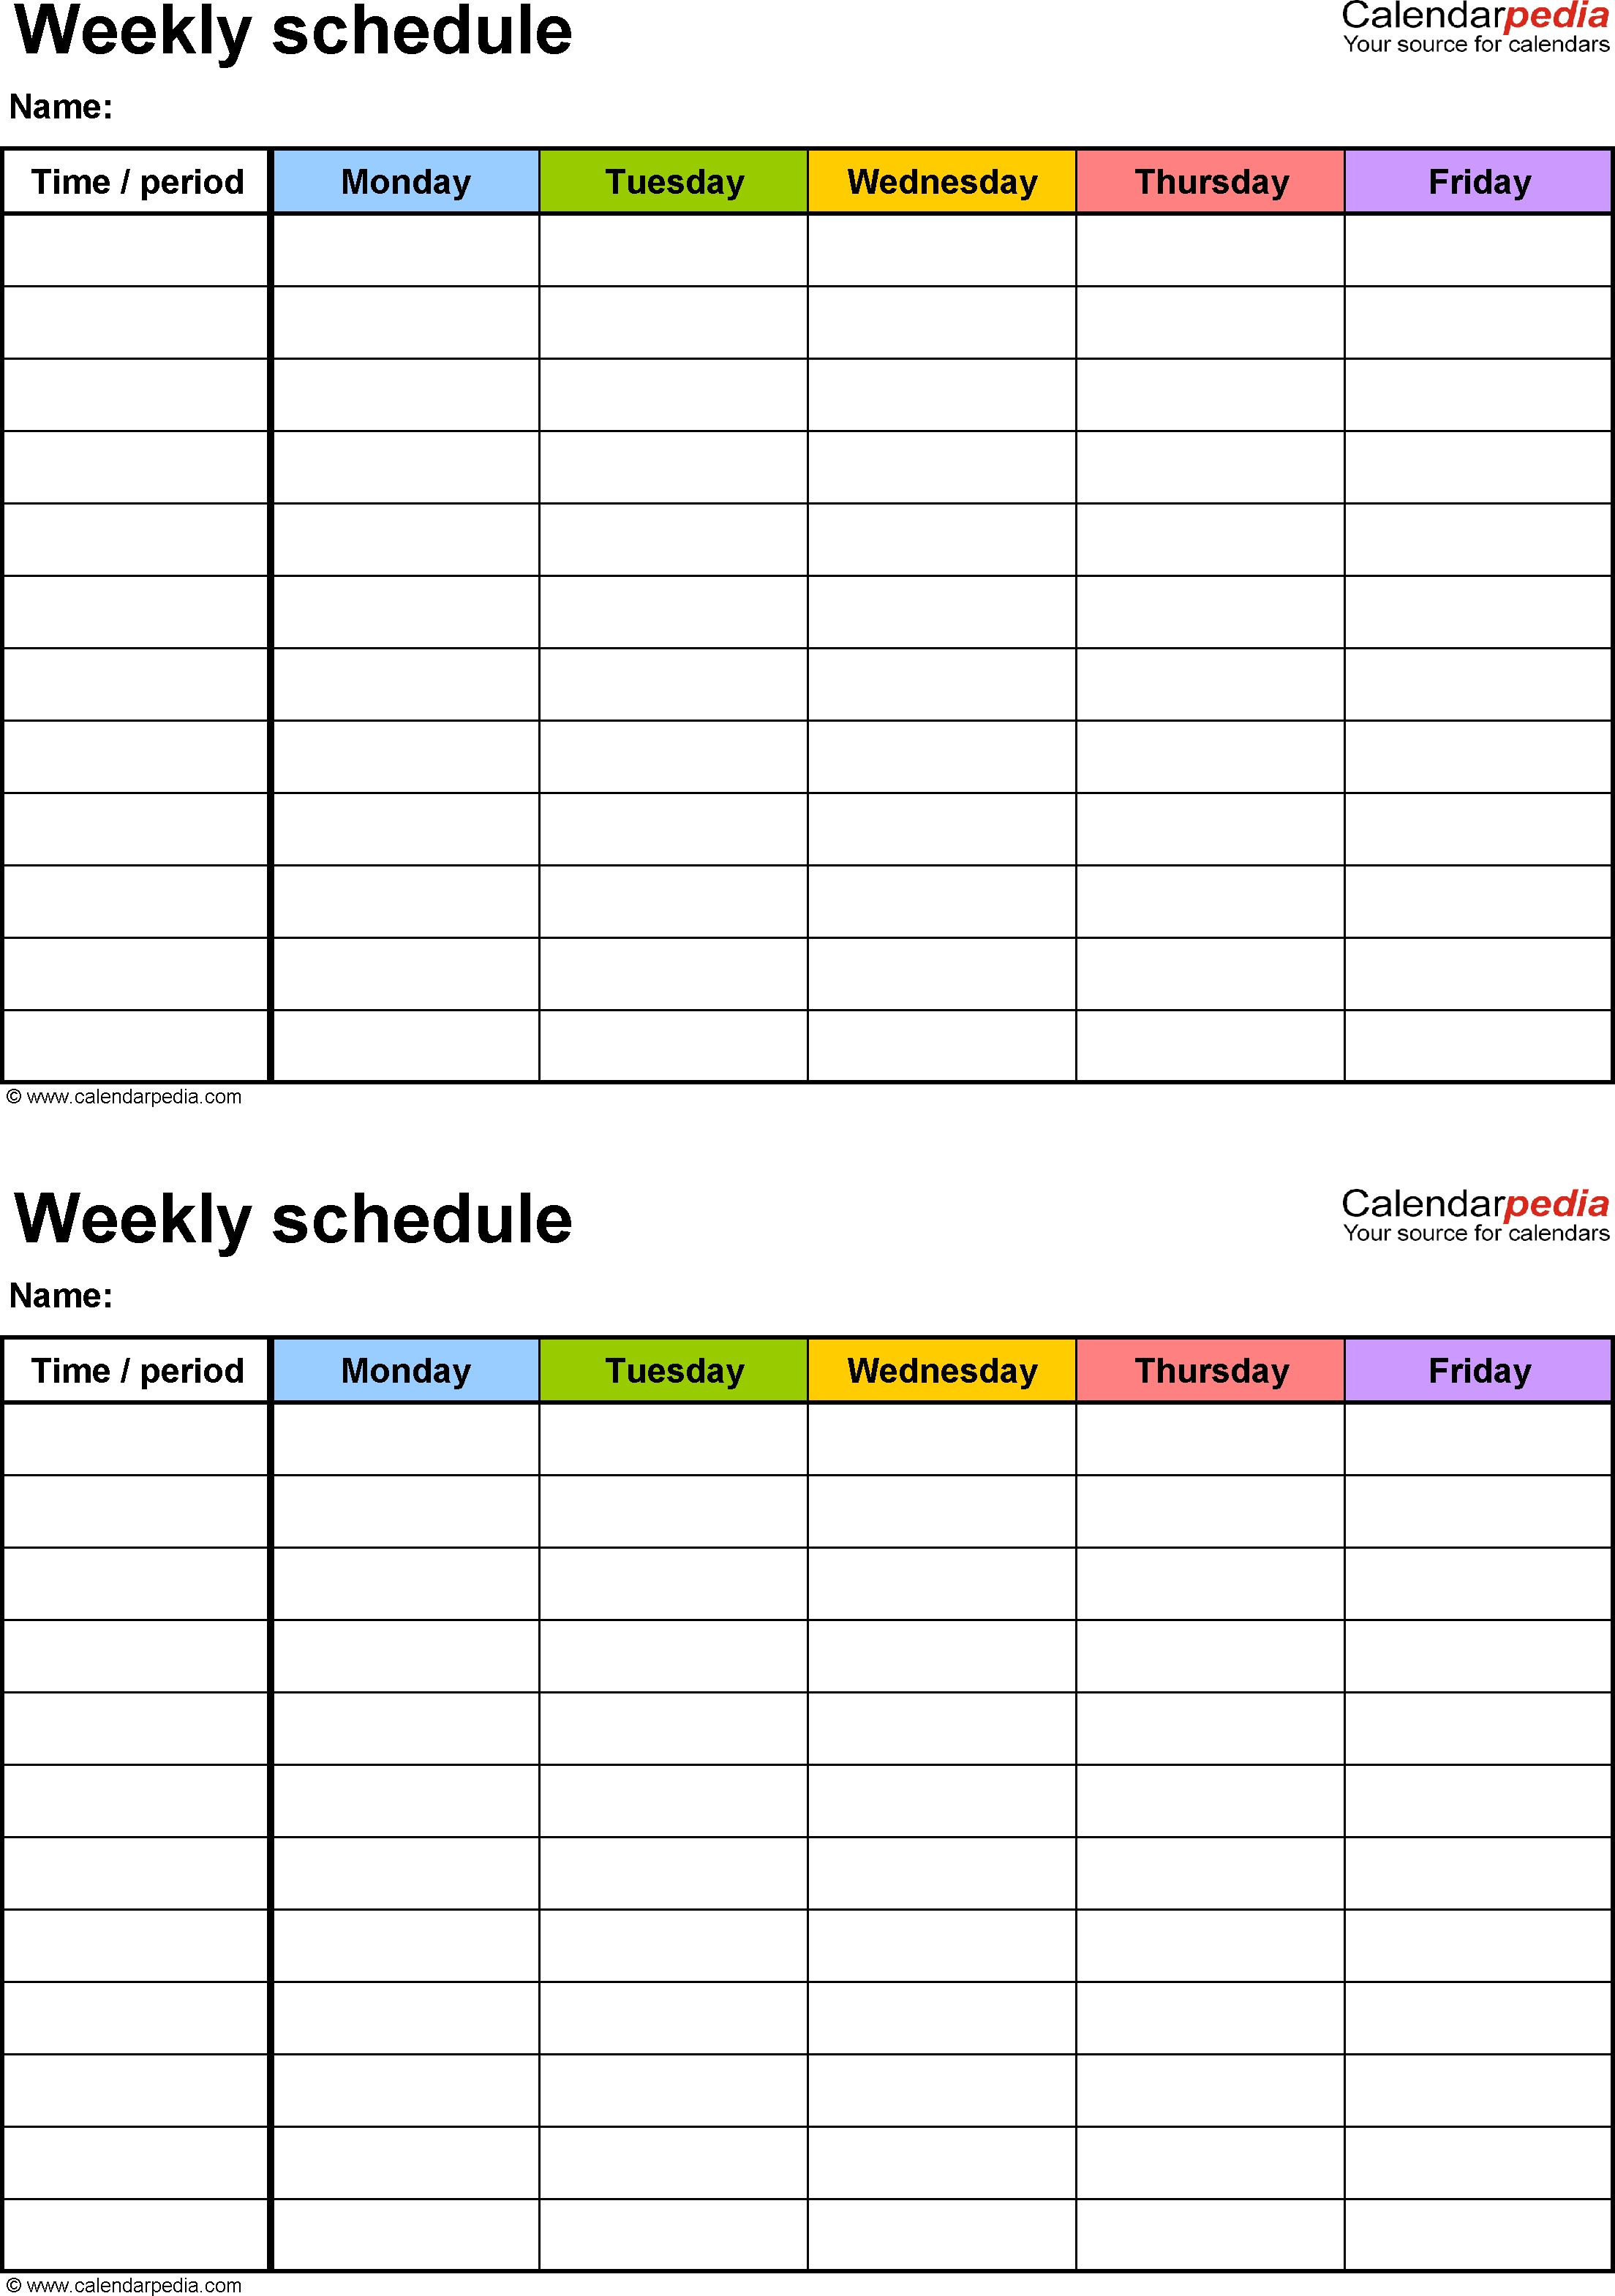 Free Weekly Schedule Templates For Excel - 18 Templates regarding Monthly Calendar By Week Excel